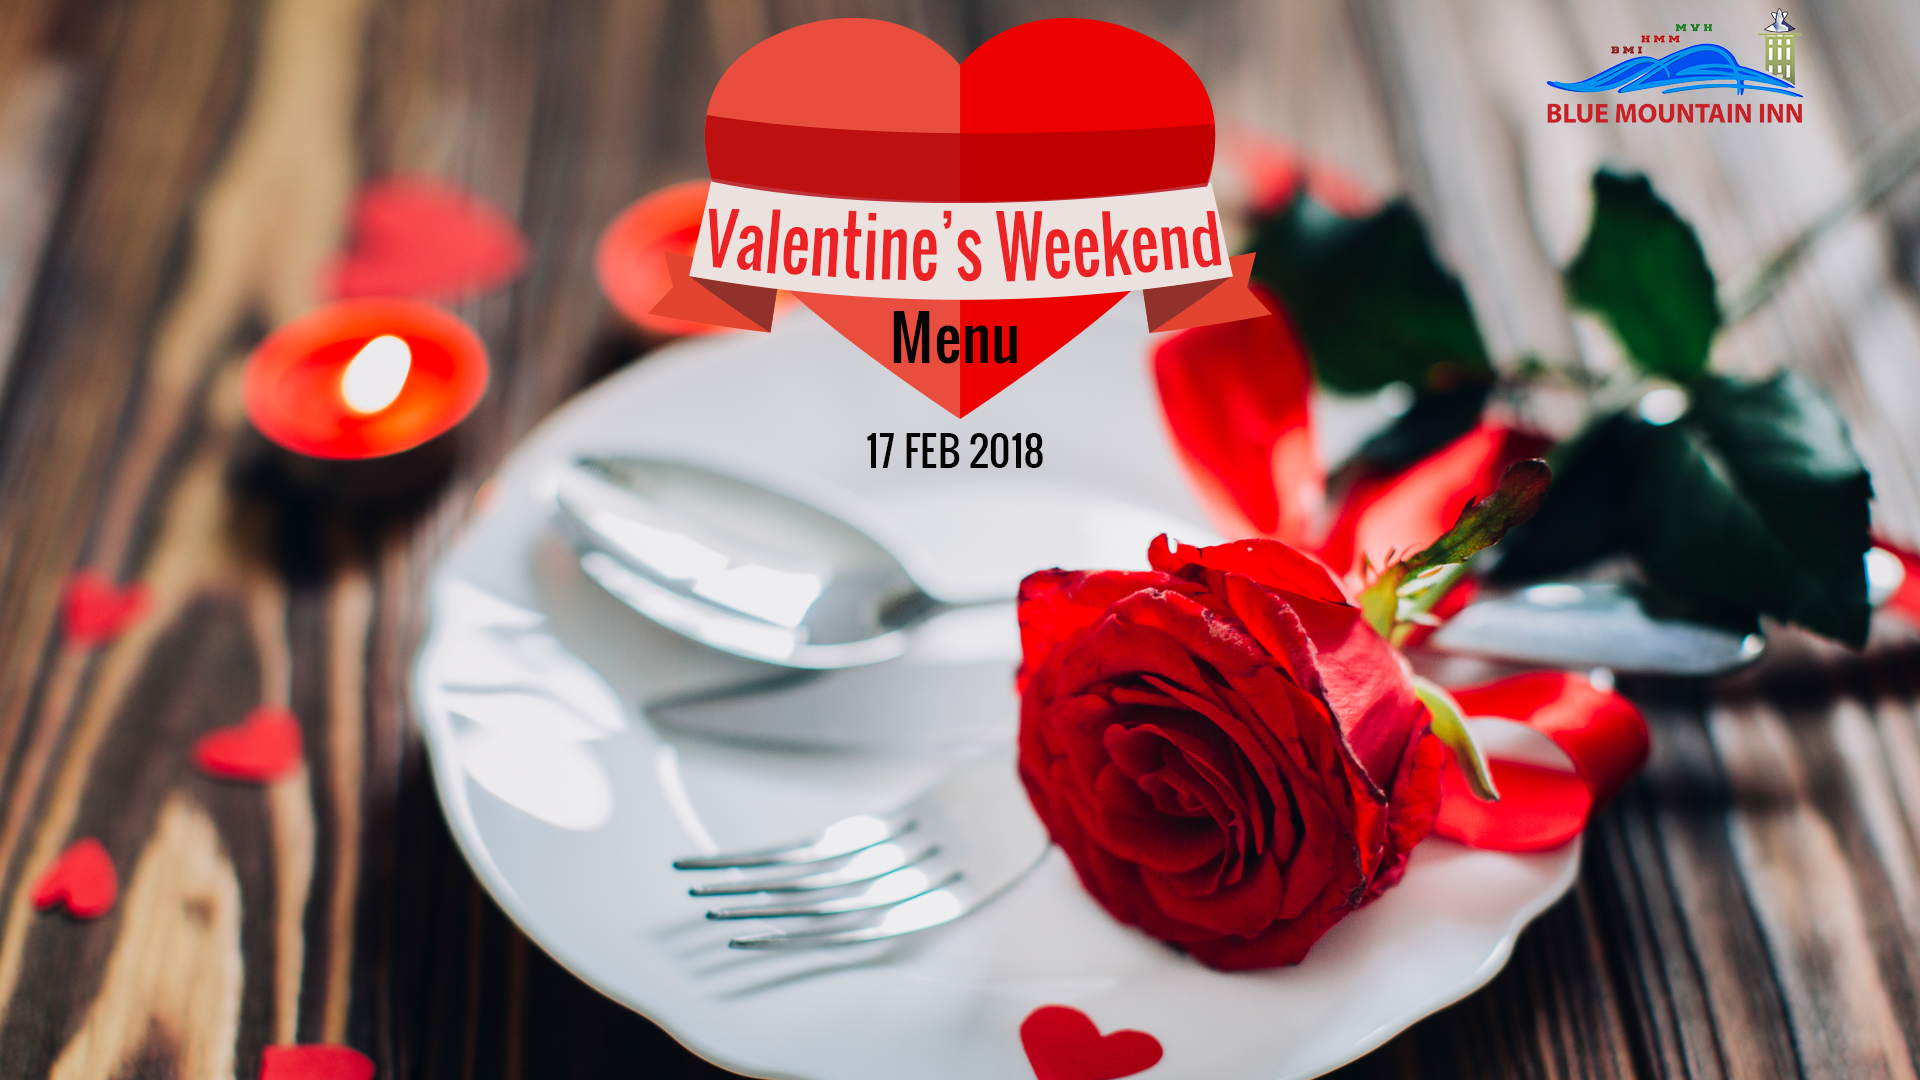 Valentine's weekend dinner menu